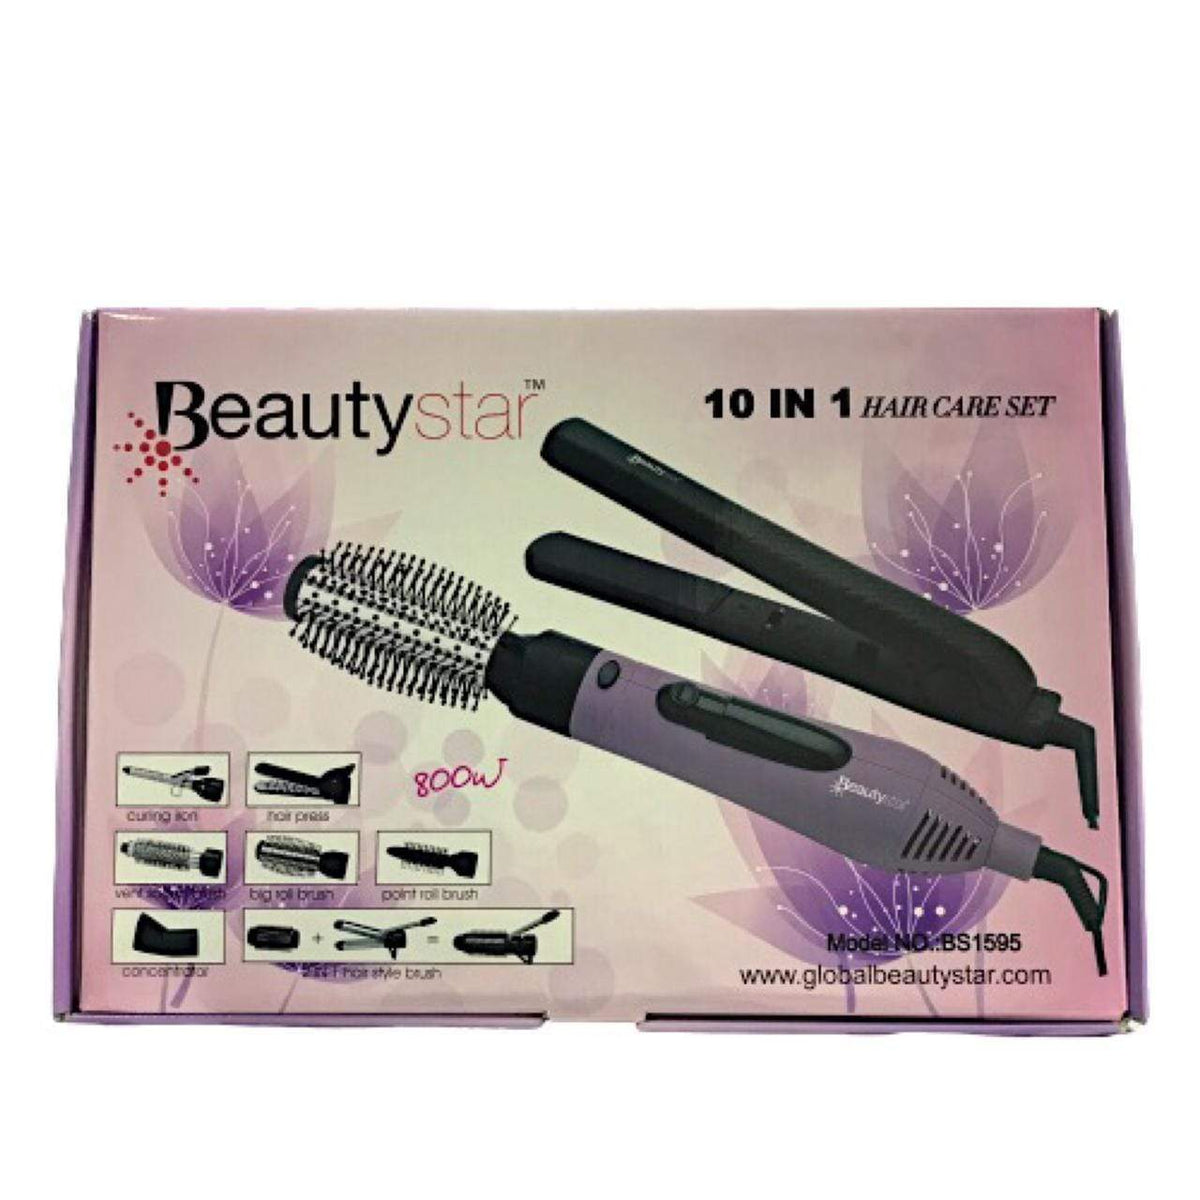 Hair care, Hair iron, Hair curler, Hair styler, Hair styling, Hair equipment